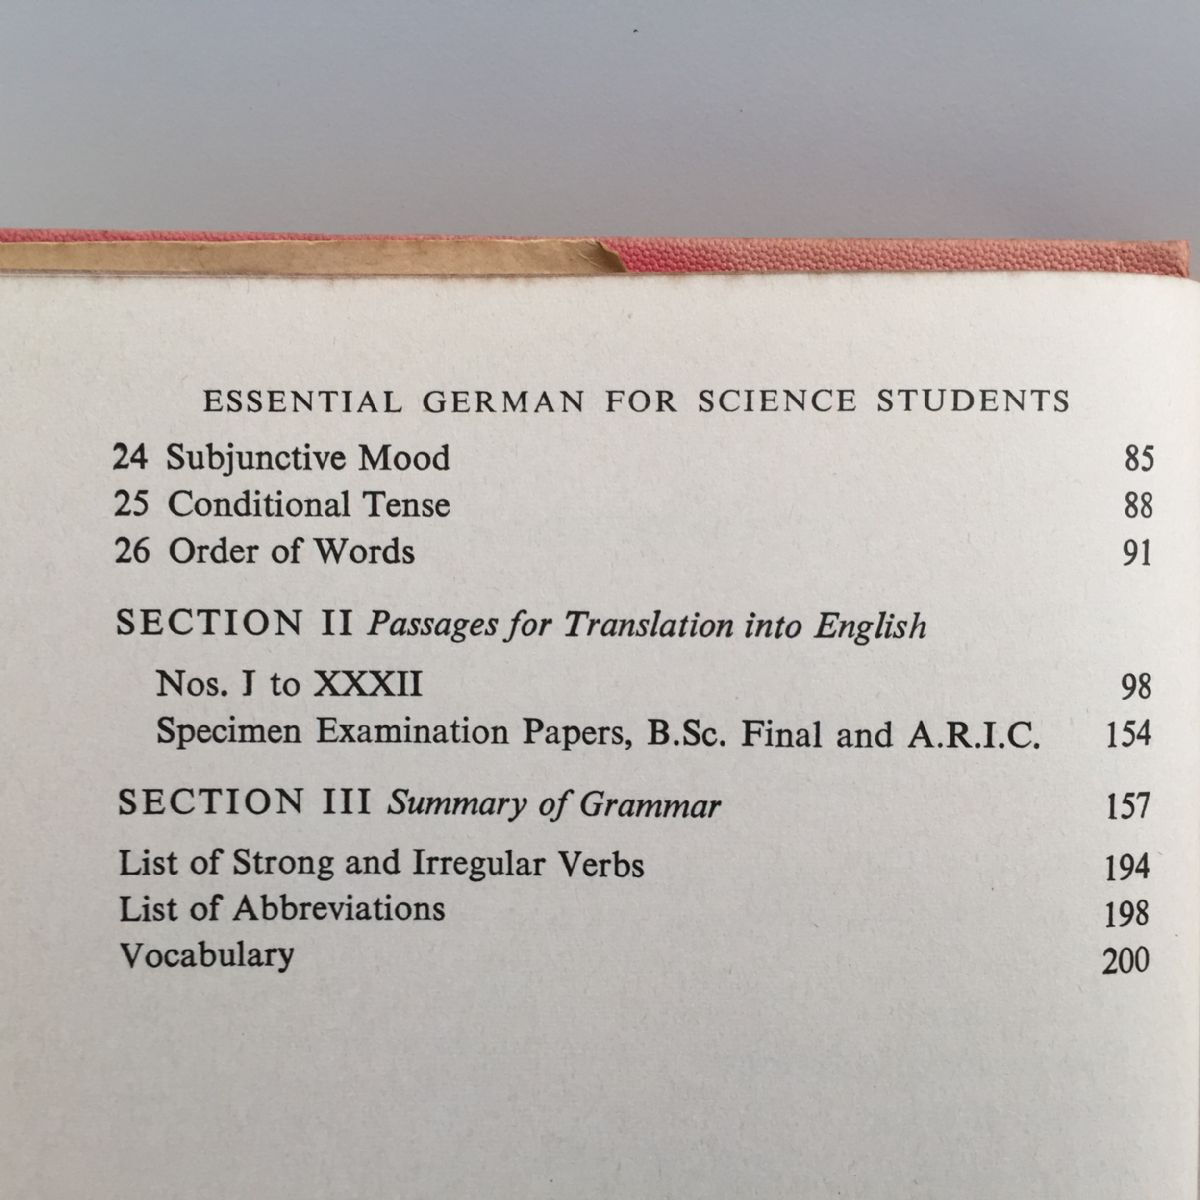 Essential German for Science Students